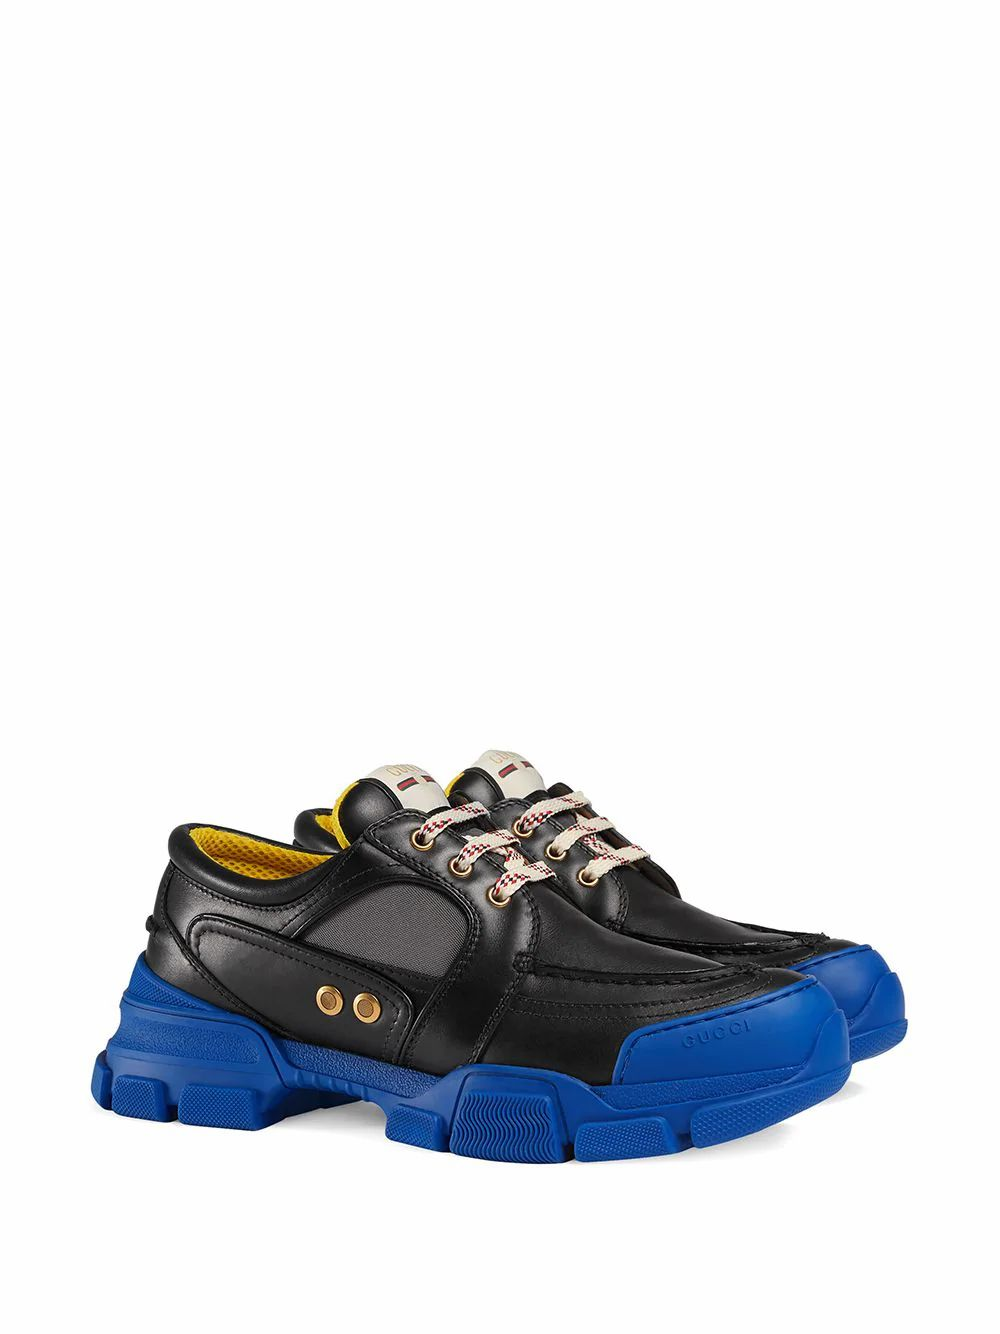 GUCCI Leathers GUCCI MEN'S BLACK LEATHER SNEAKERS